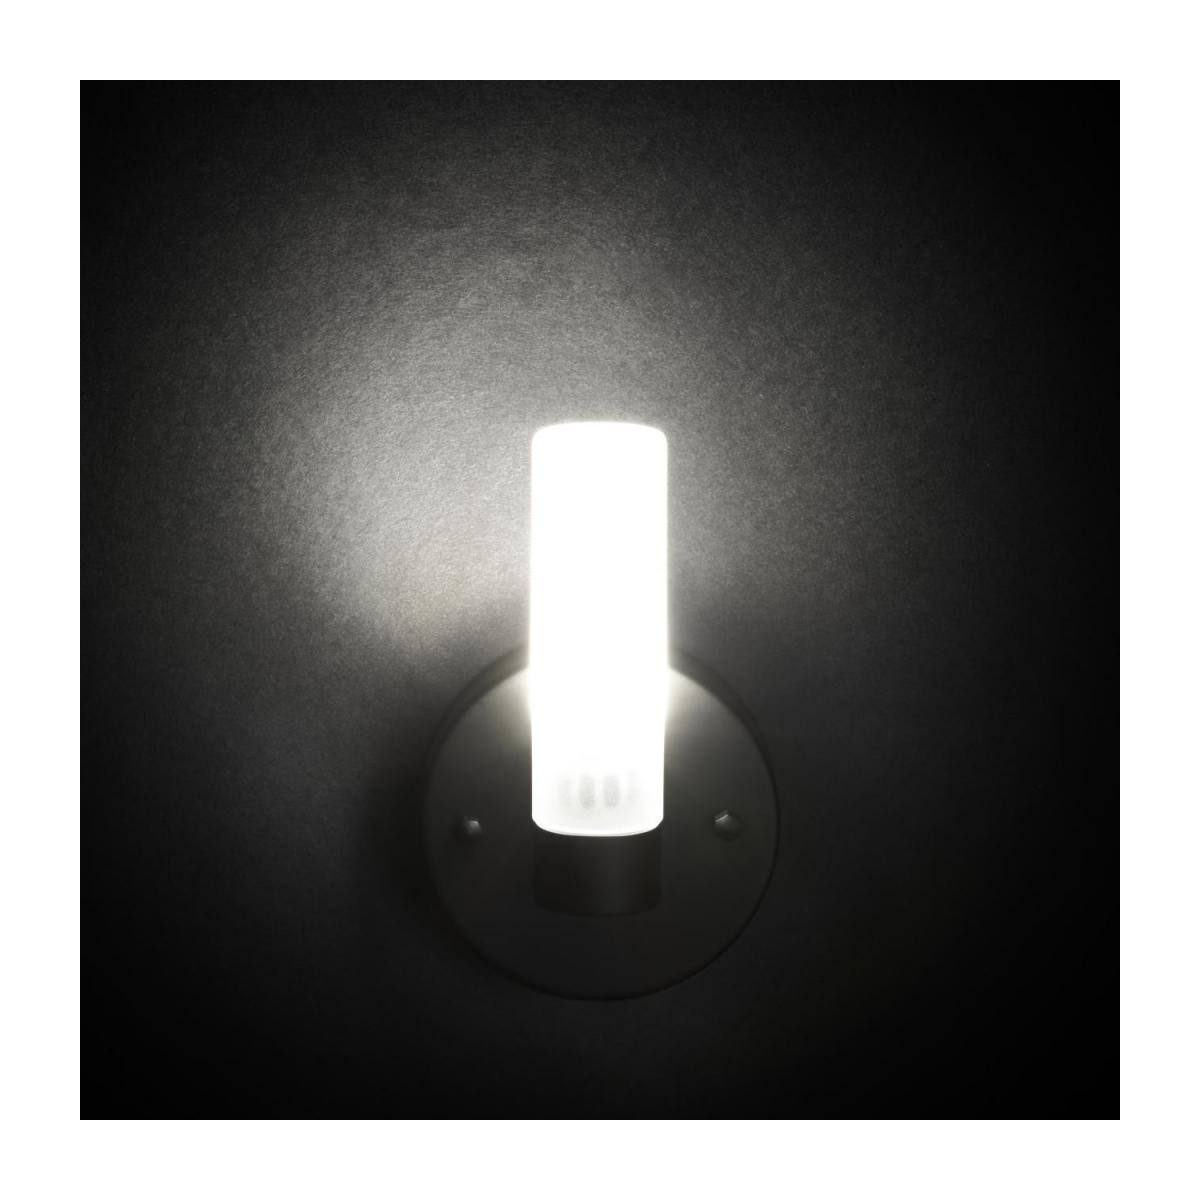 Wandleuchte Led Ip44 Wandleuchte Led Cool Islet Led Wandleuchte Metall L Cm Wei By